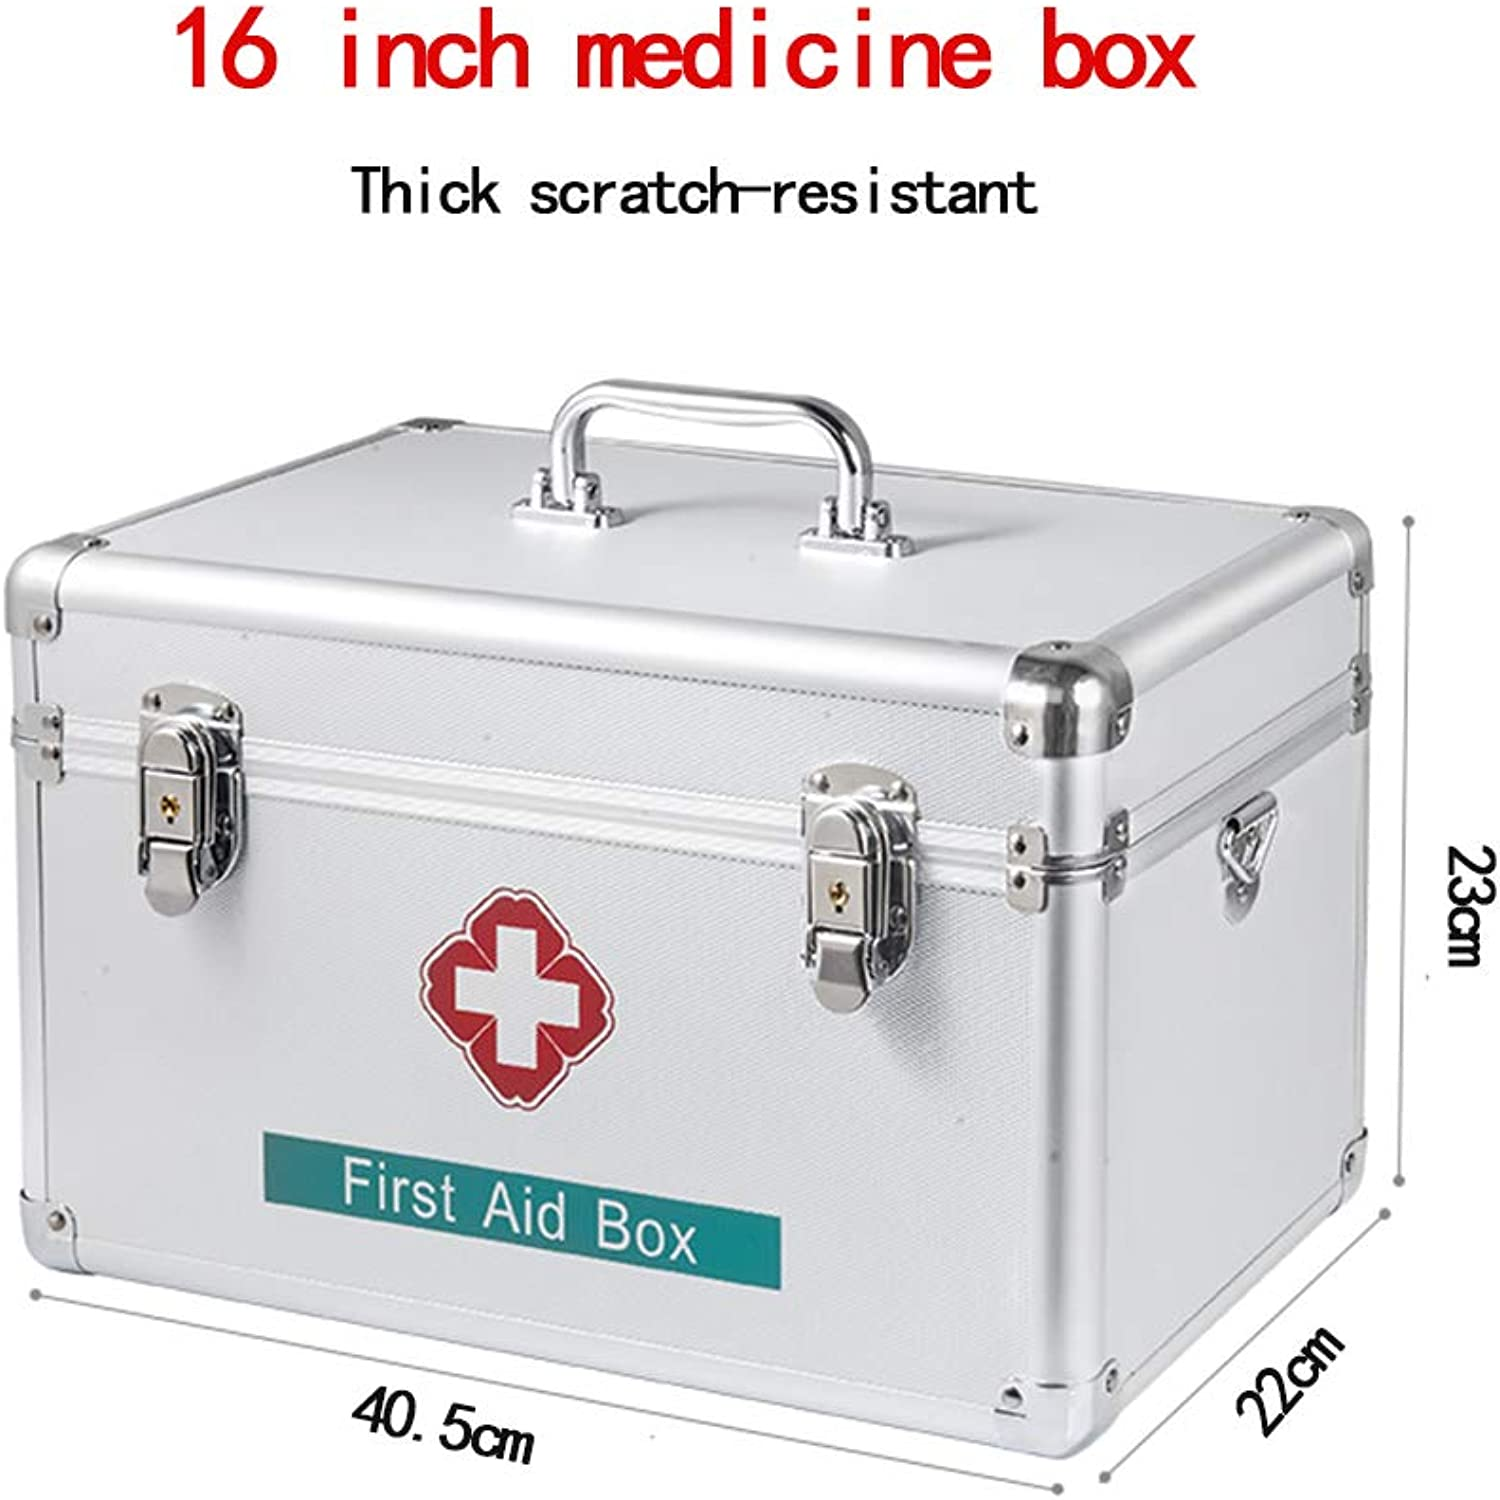 Medicine Cabinet, Double Storage Box Durable Aluminum Frame Double Security Lock Large Capacity Medical Storage Box First aid kit